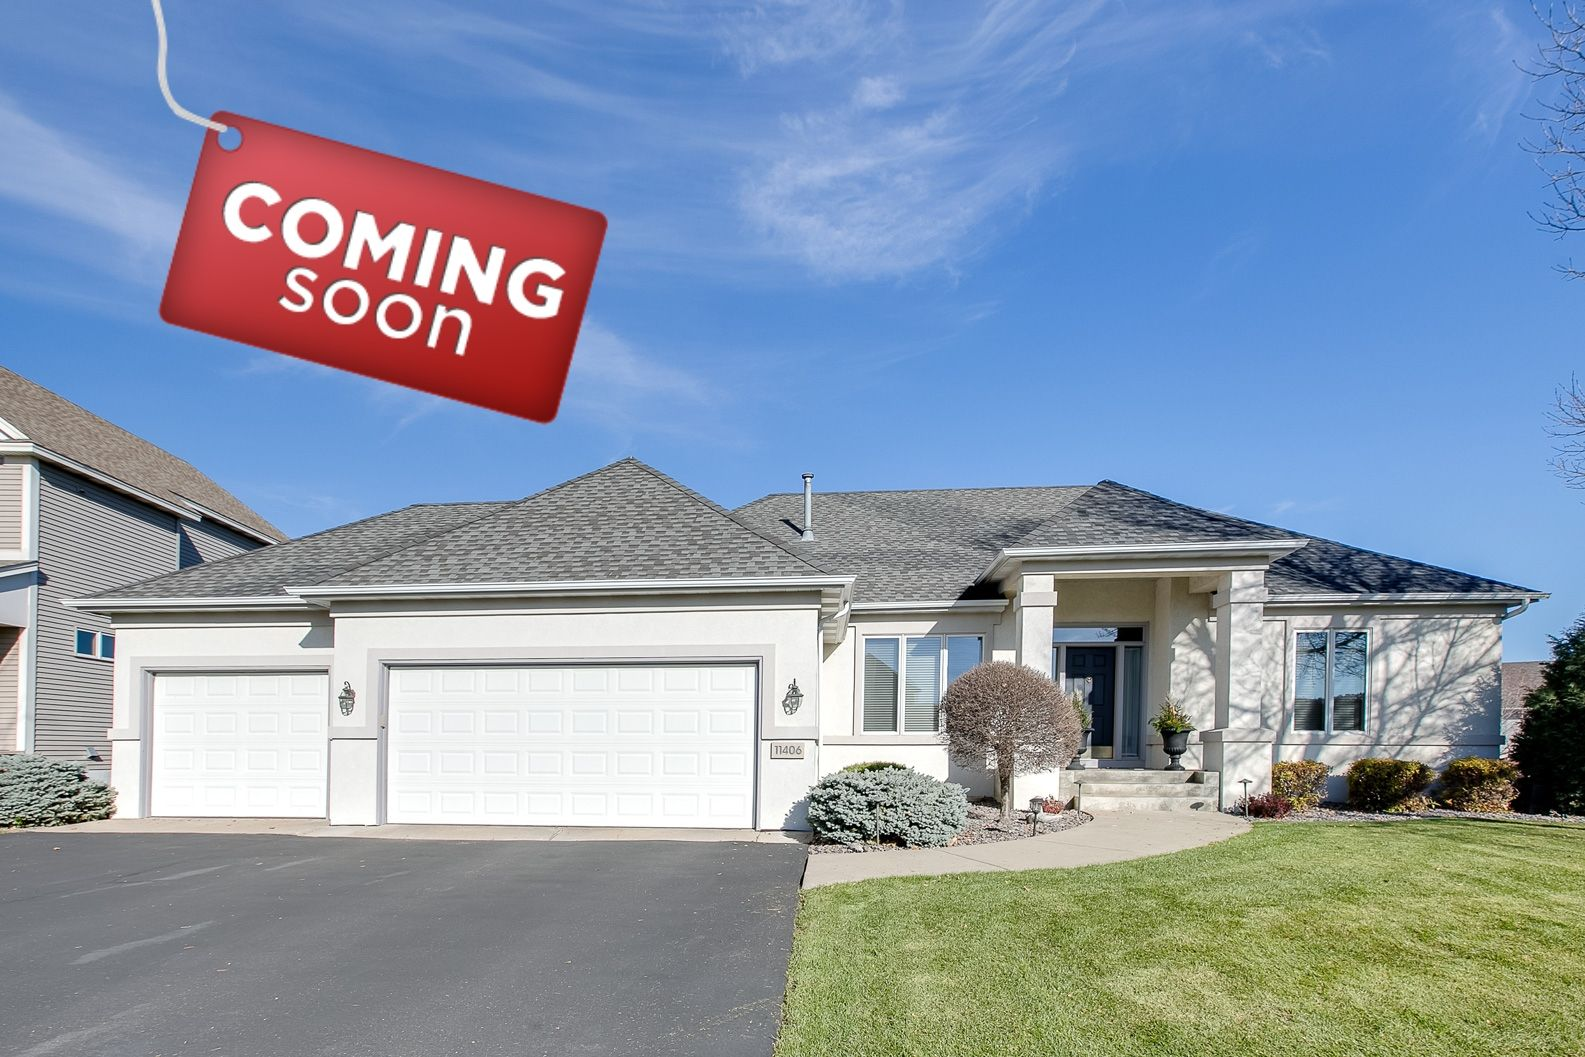 Homes For Near Elm Creek Park Reserve Champlin Search Just Listed And Coming Soon Non Mls Properties Direct Feed From Check Your Home Value